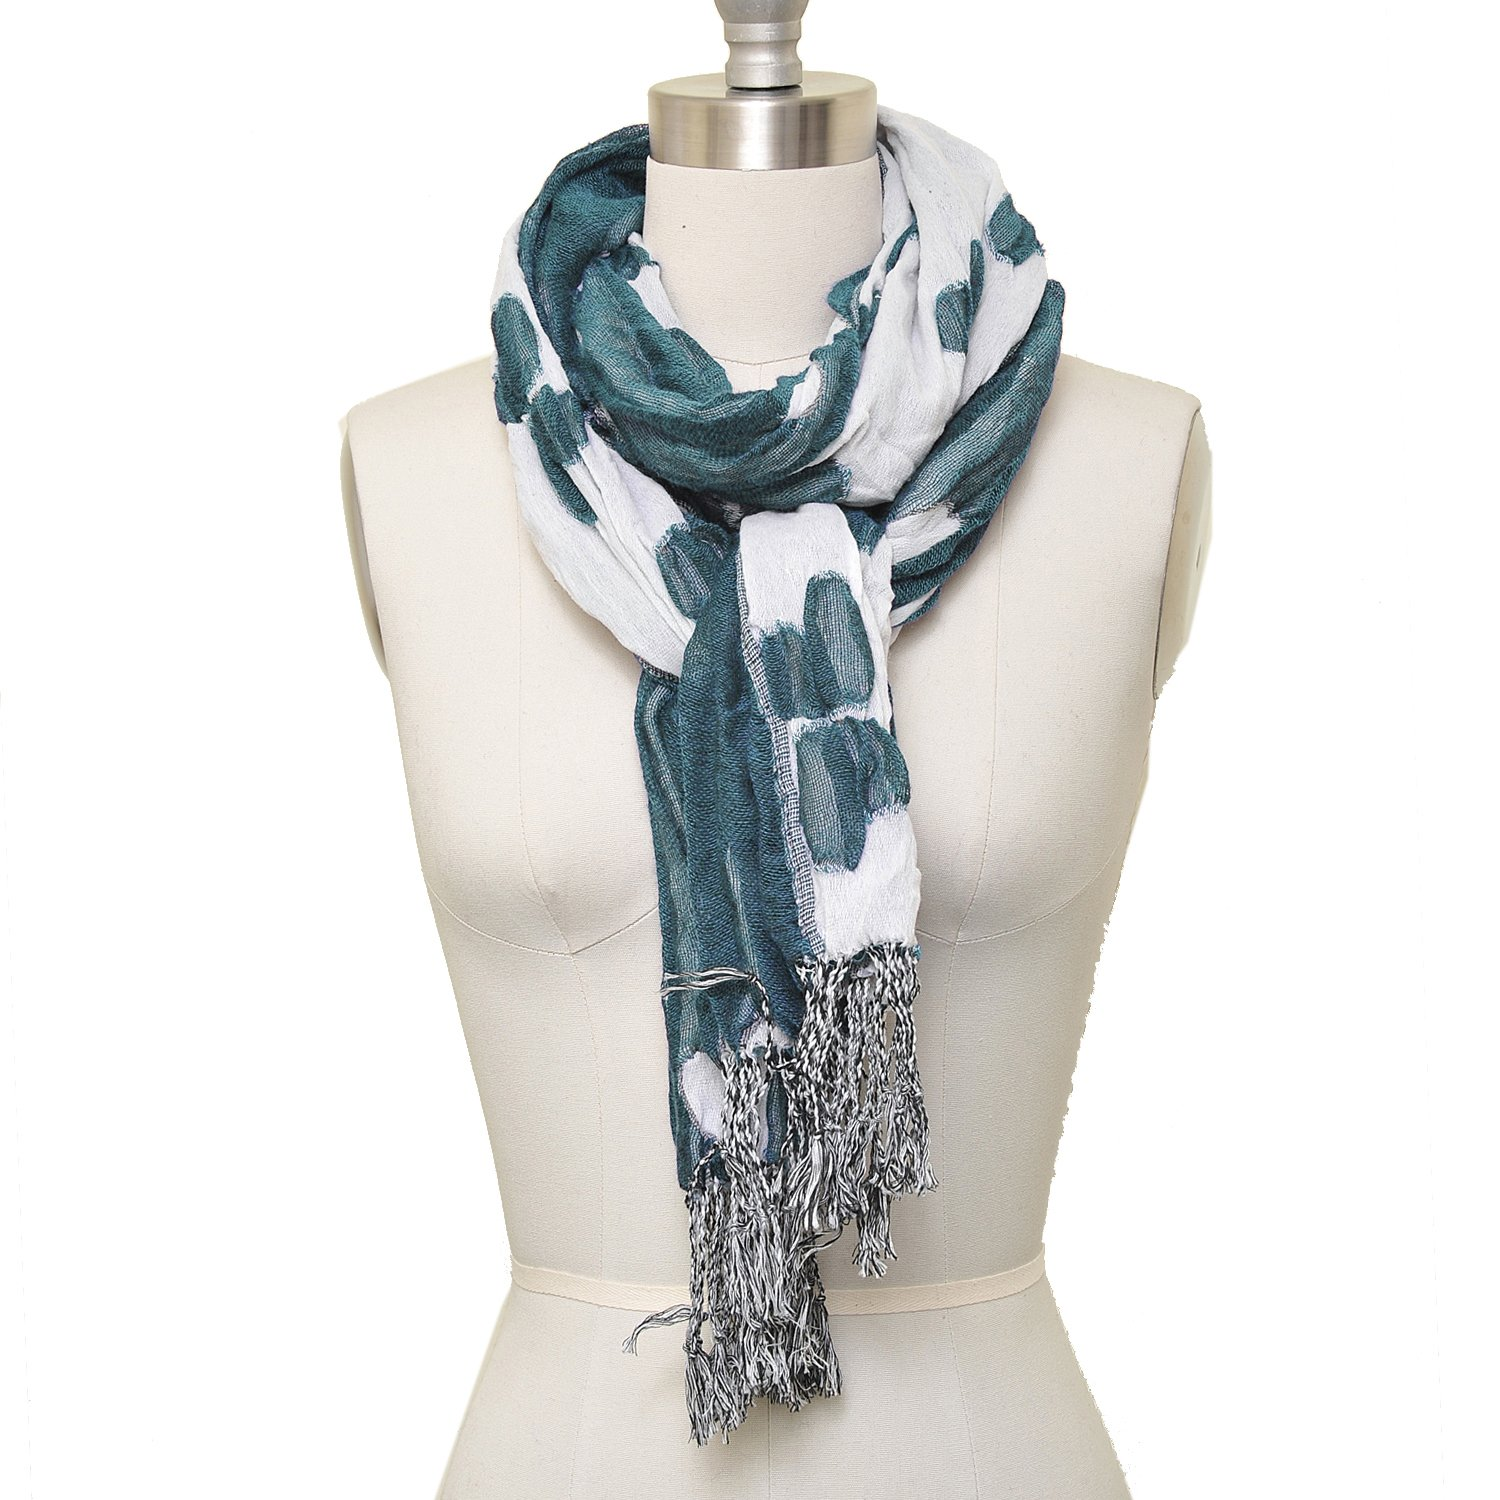 HUE21 Women's Ruffle Stretch Double Sided Floral Scarf Blue Green and White Color